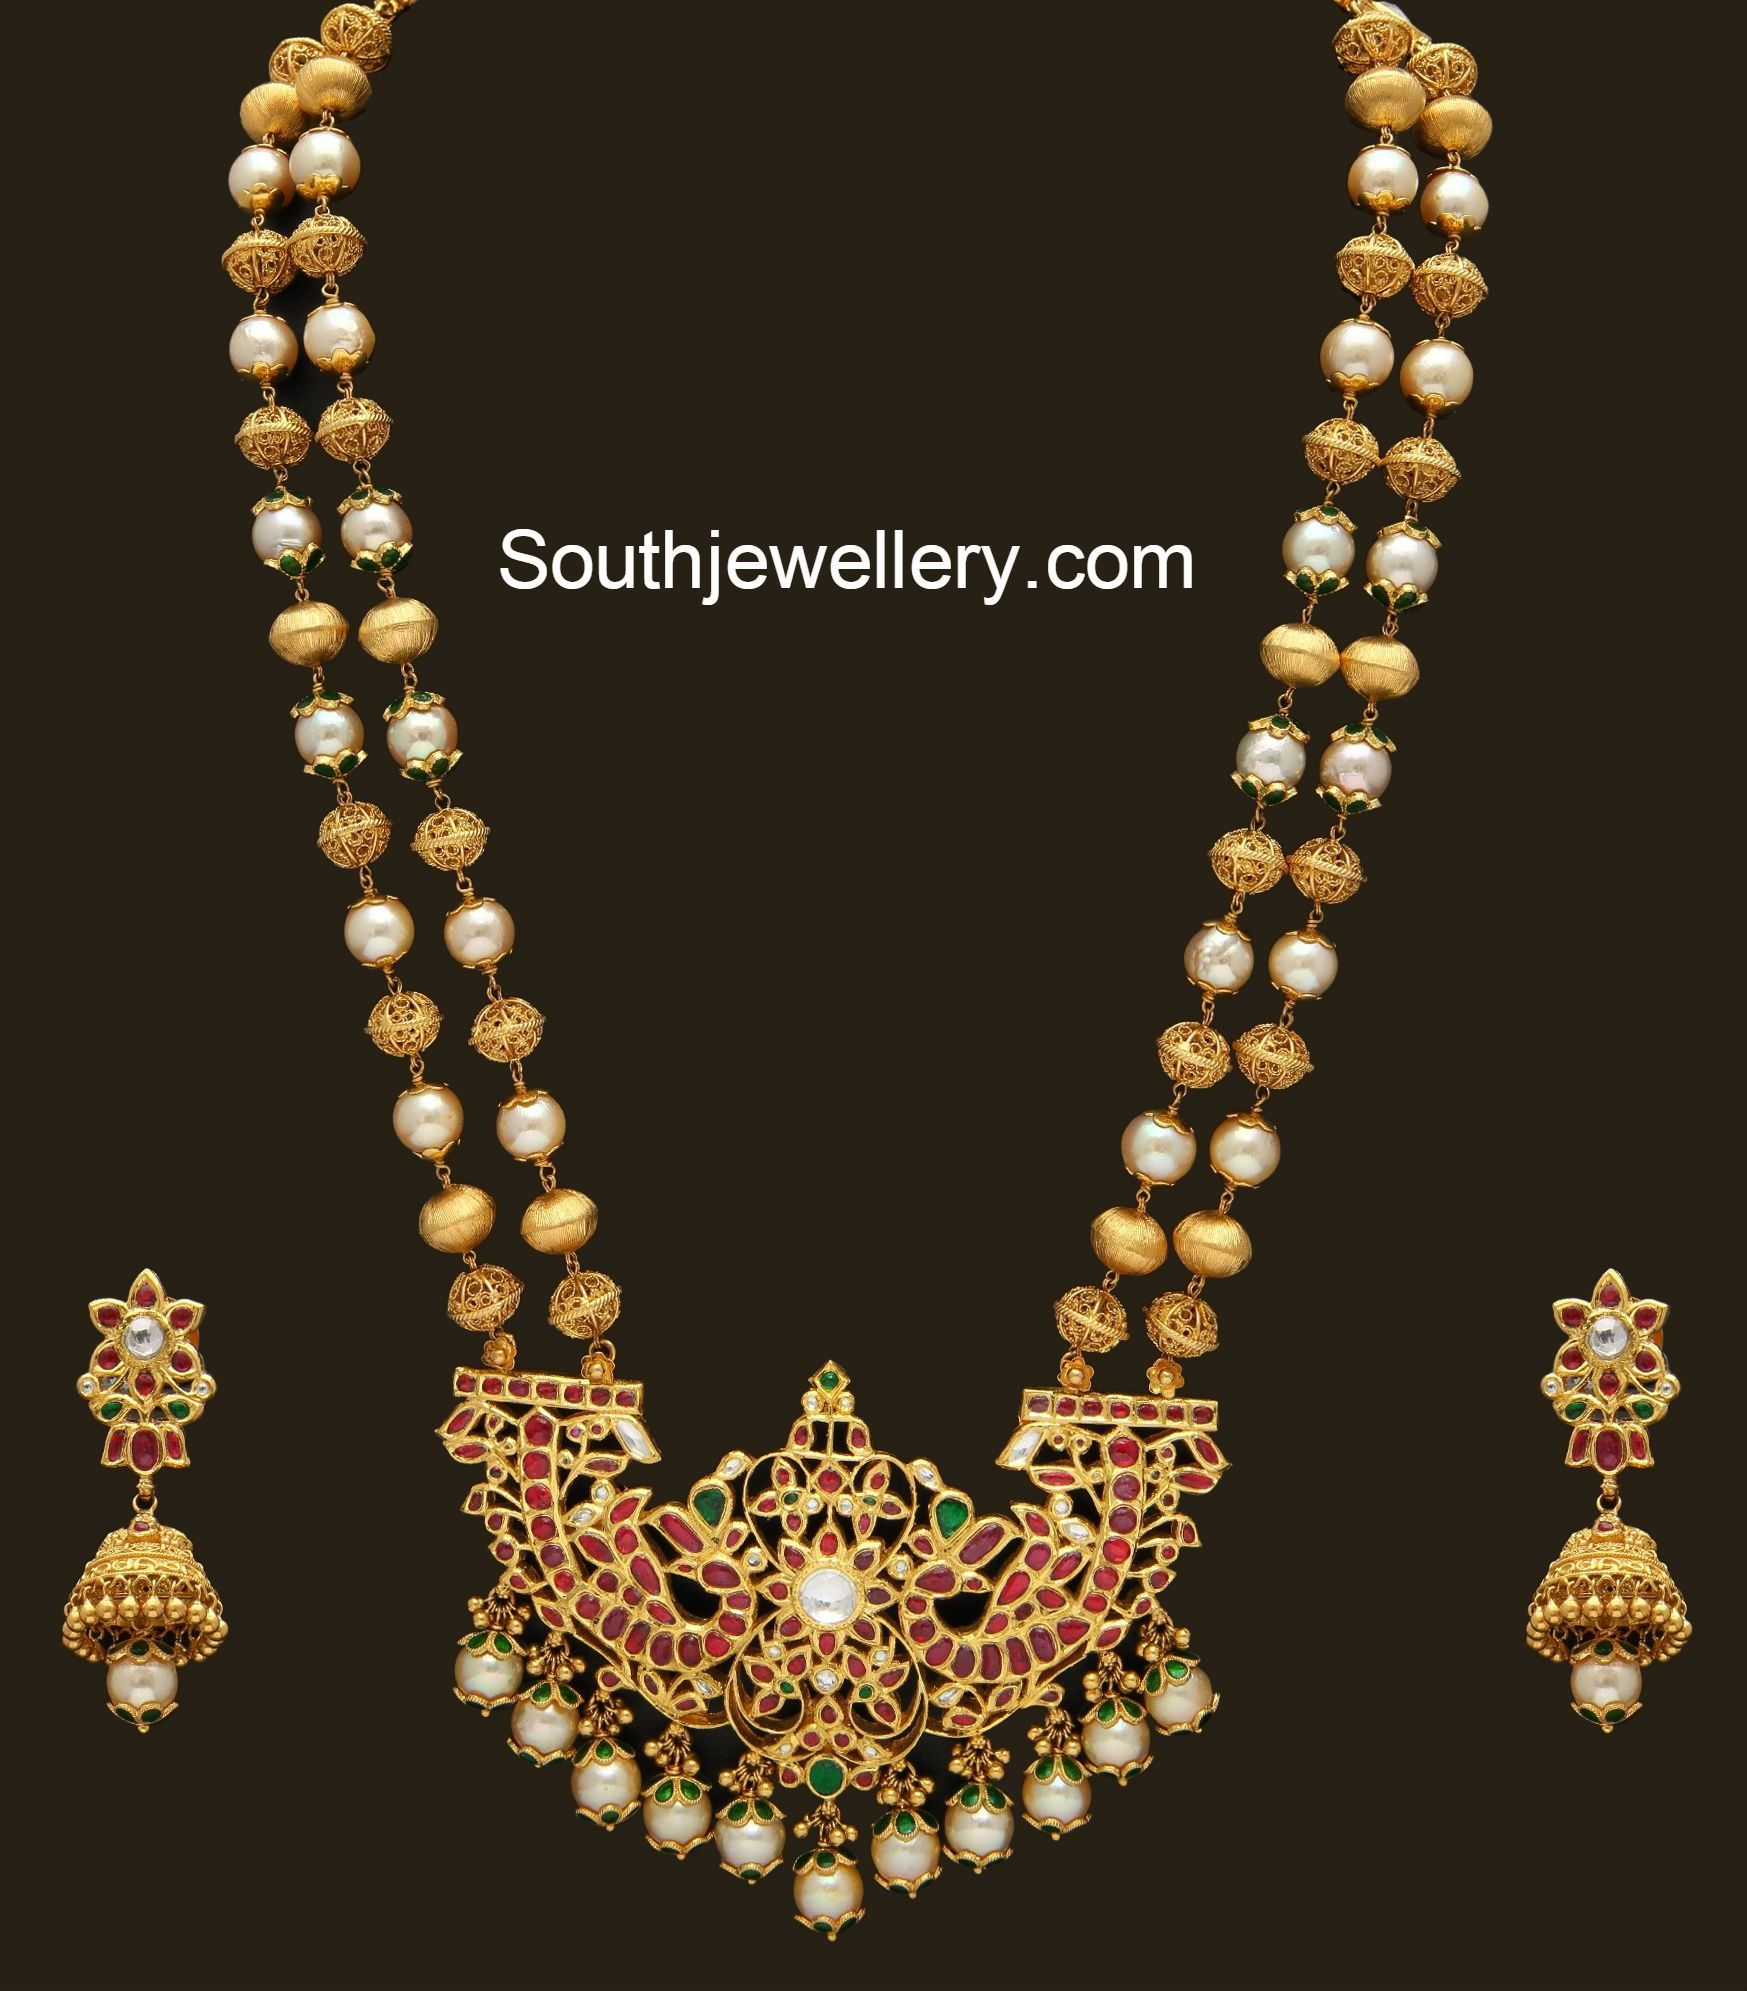 Pin by Reshu Reddy on Gold   Pinterest   Gold, Pearls and Indian ...